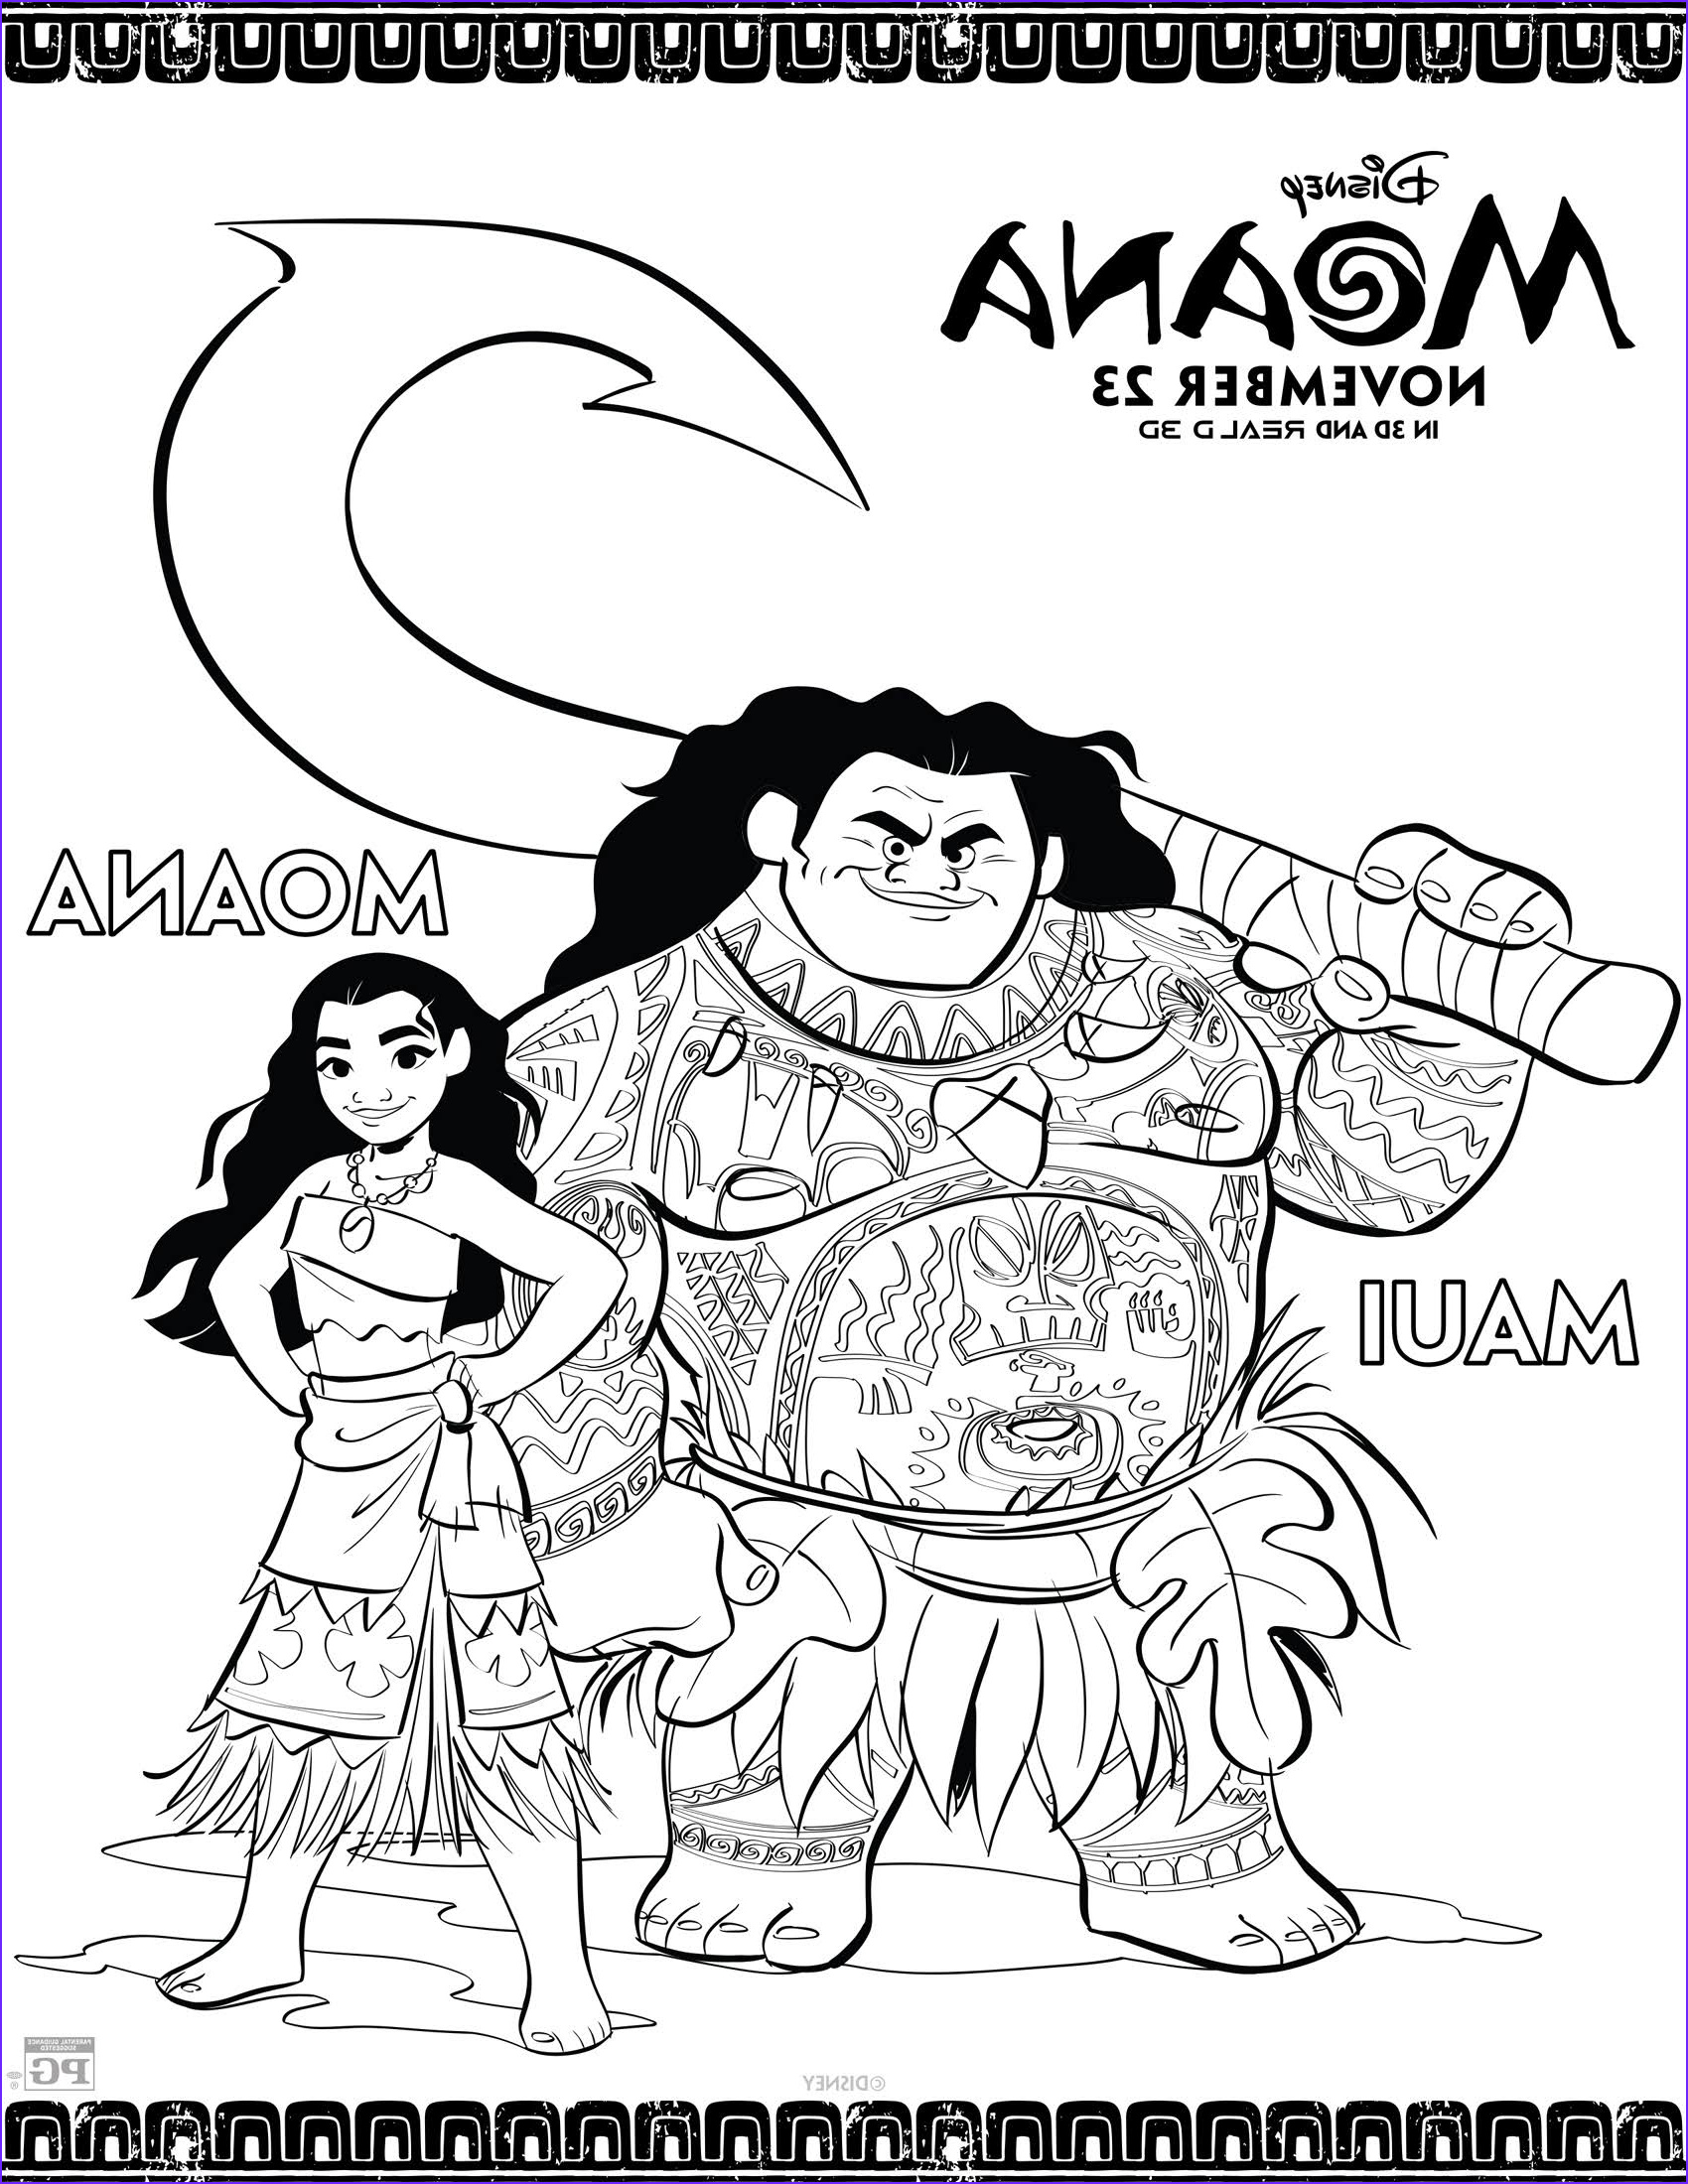 Moana Coloring Inspirational Images Disney S Moana Coloring Pages and Activity Sheets Printables